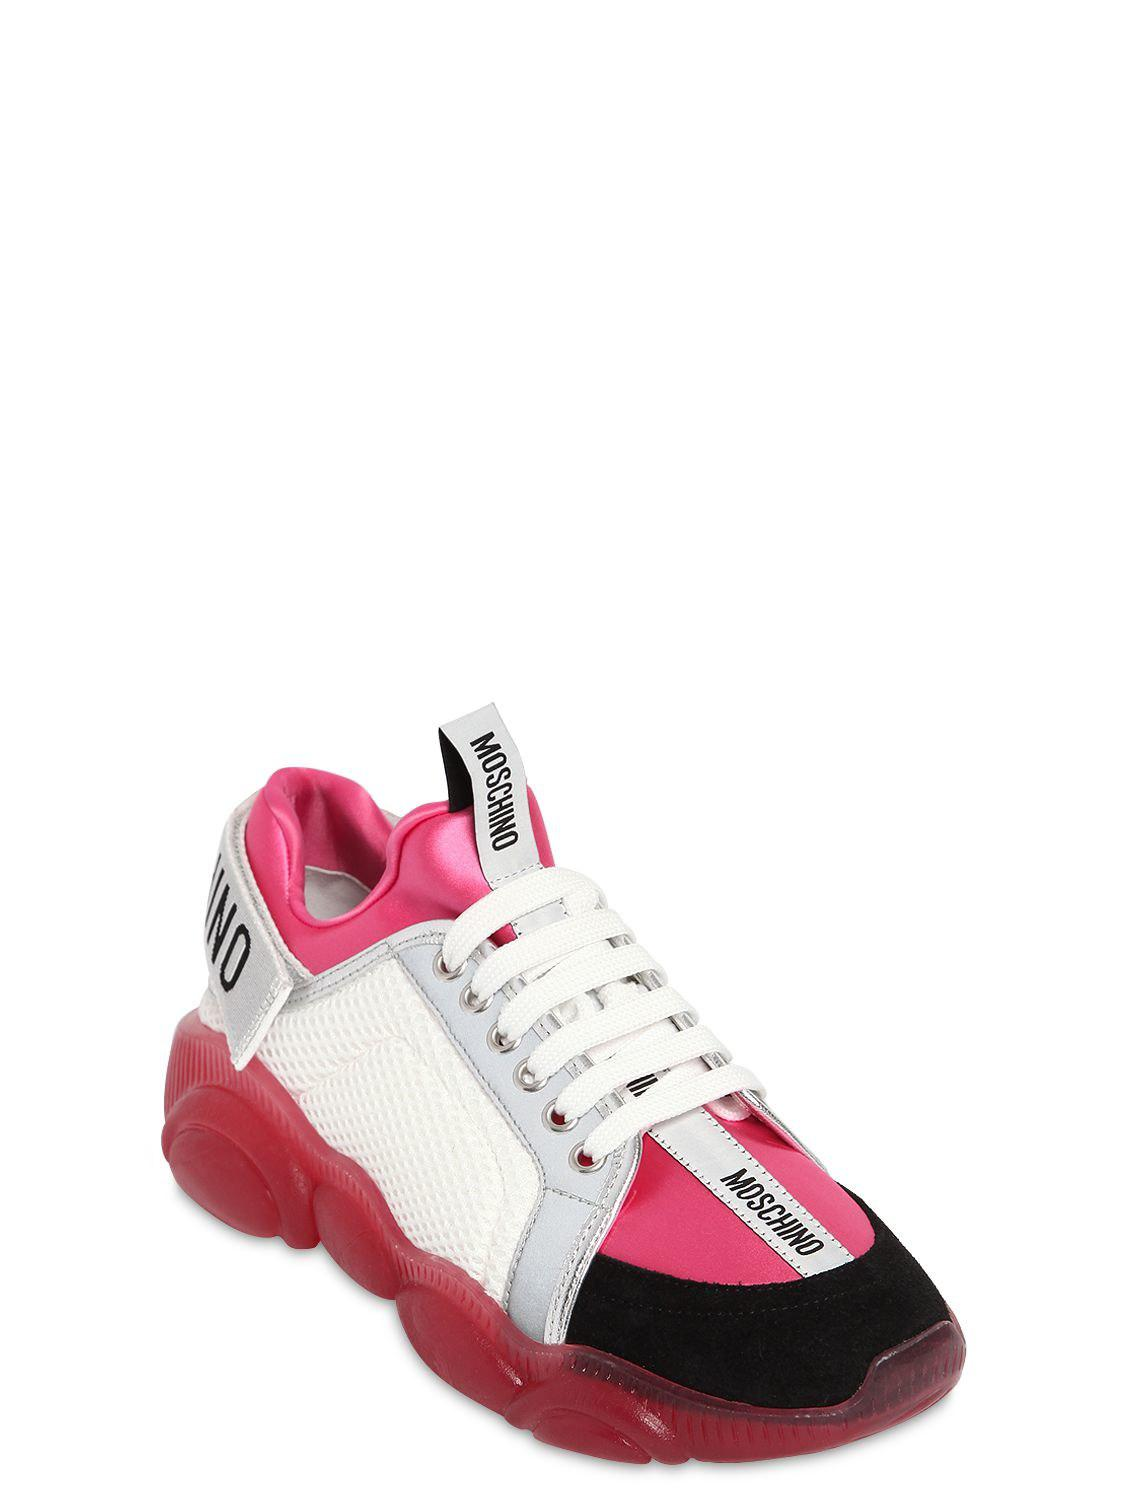 02aad3e2e7d65 Moschino White Mesh And Pink Neoprene Teddy Bear Sneakers in White - Save  1% - Lyst